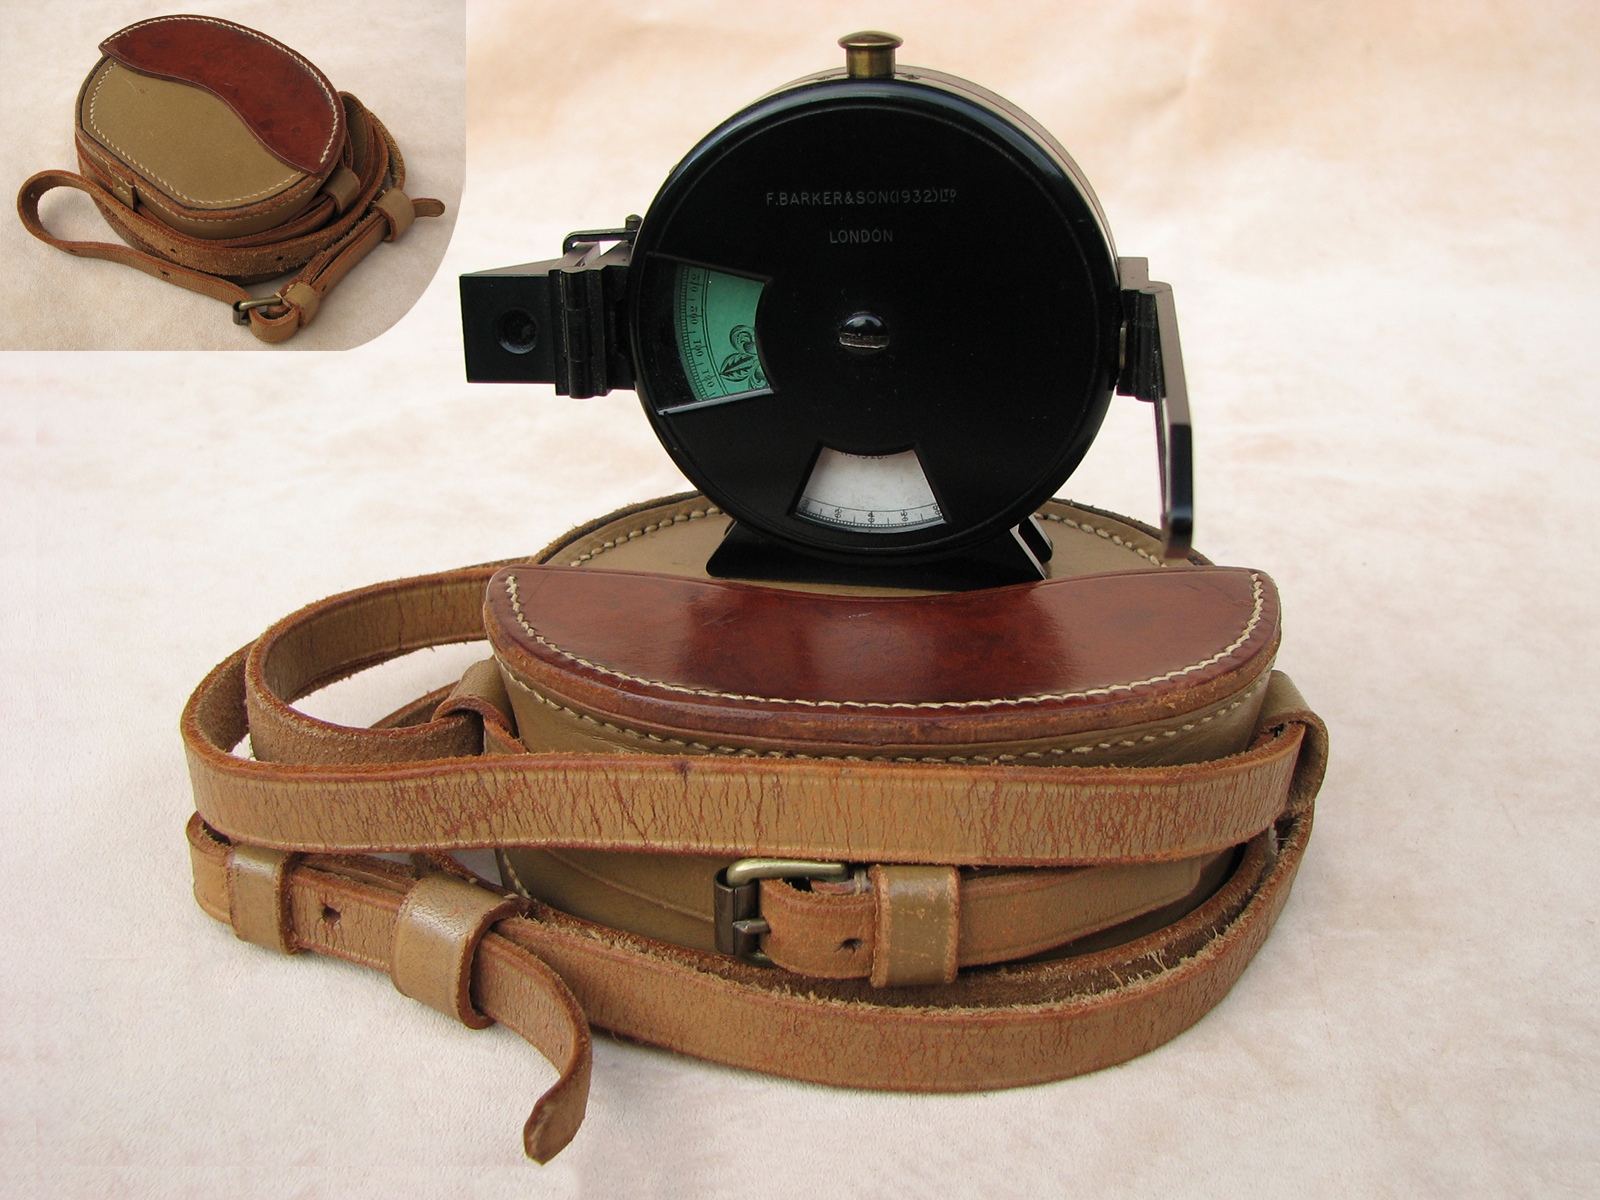 1930s Francis Barker & Son Angle of Sight instrument